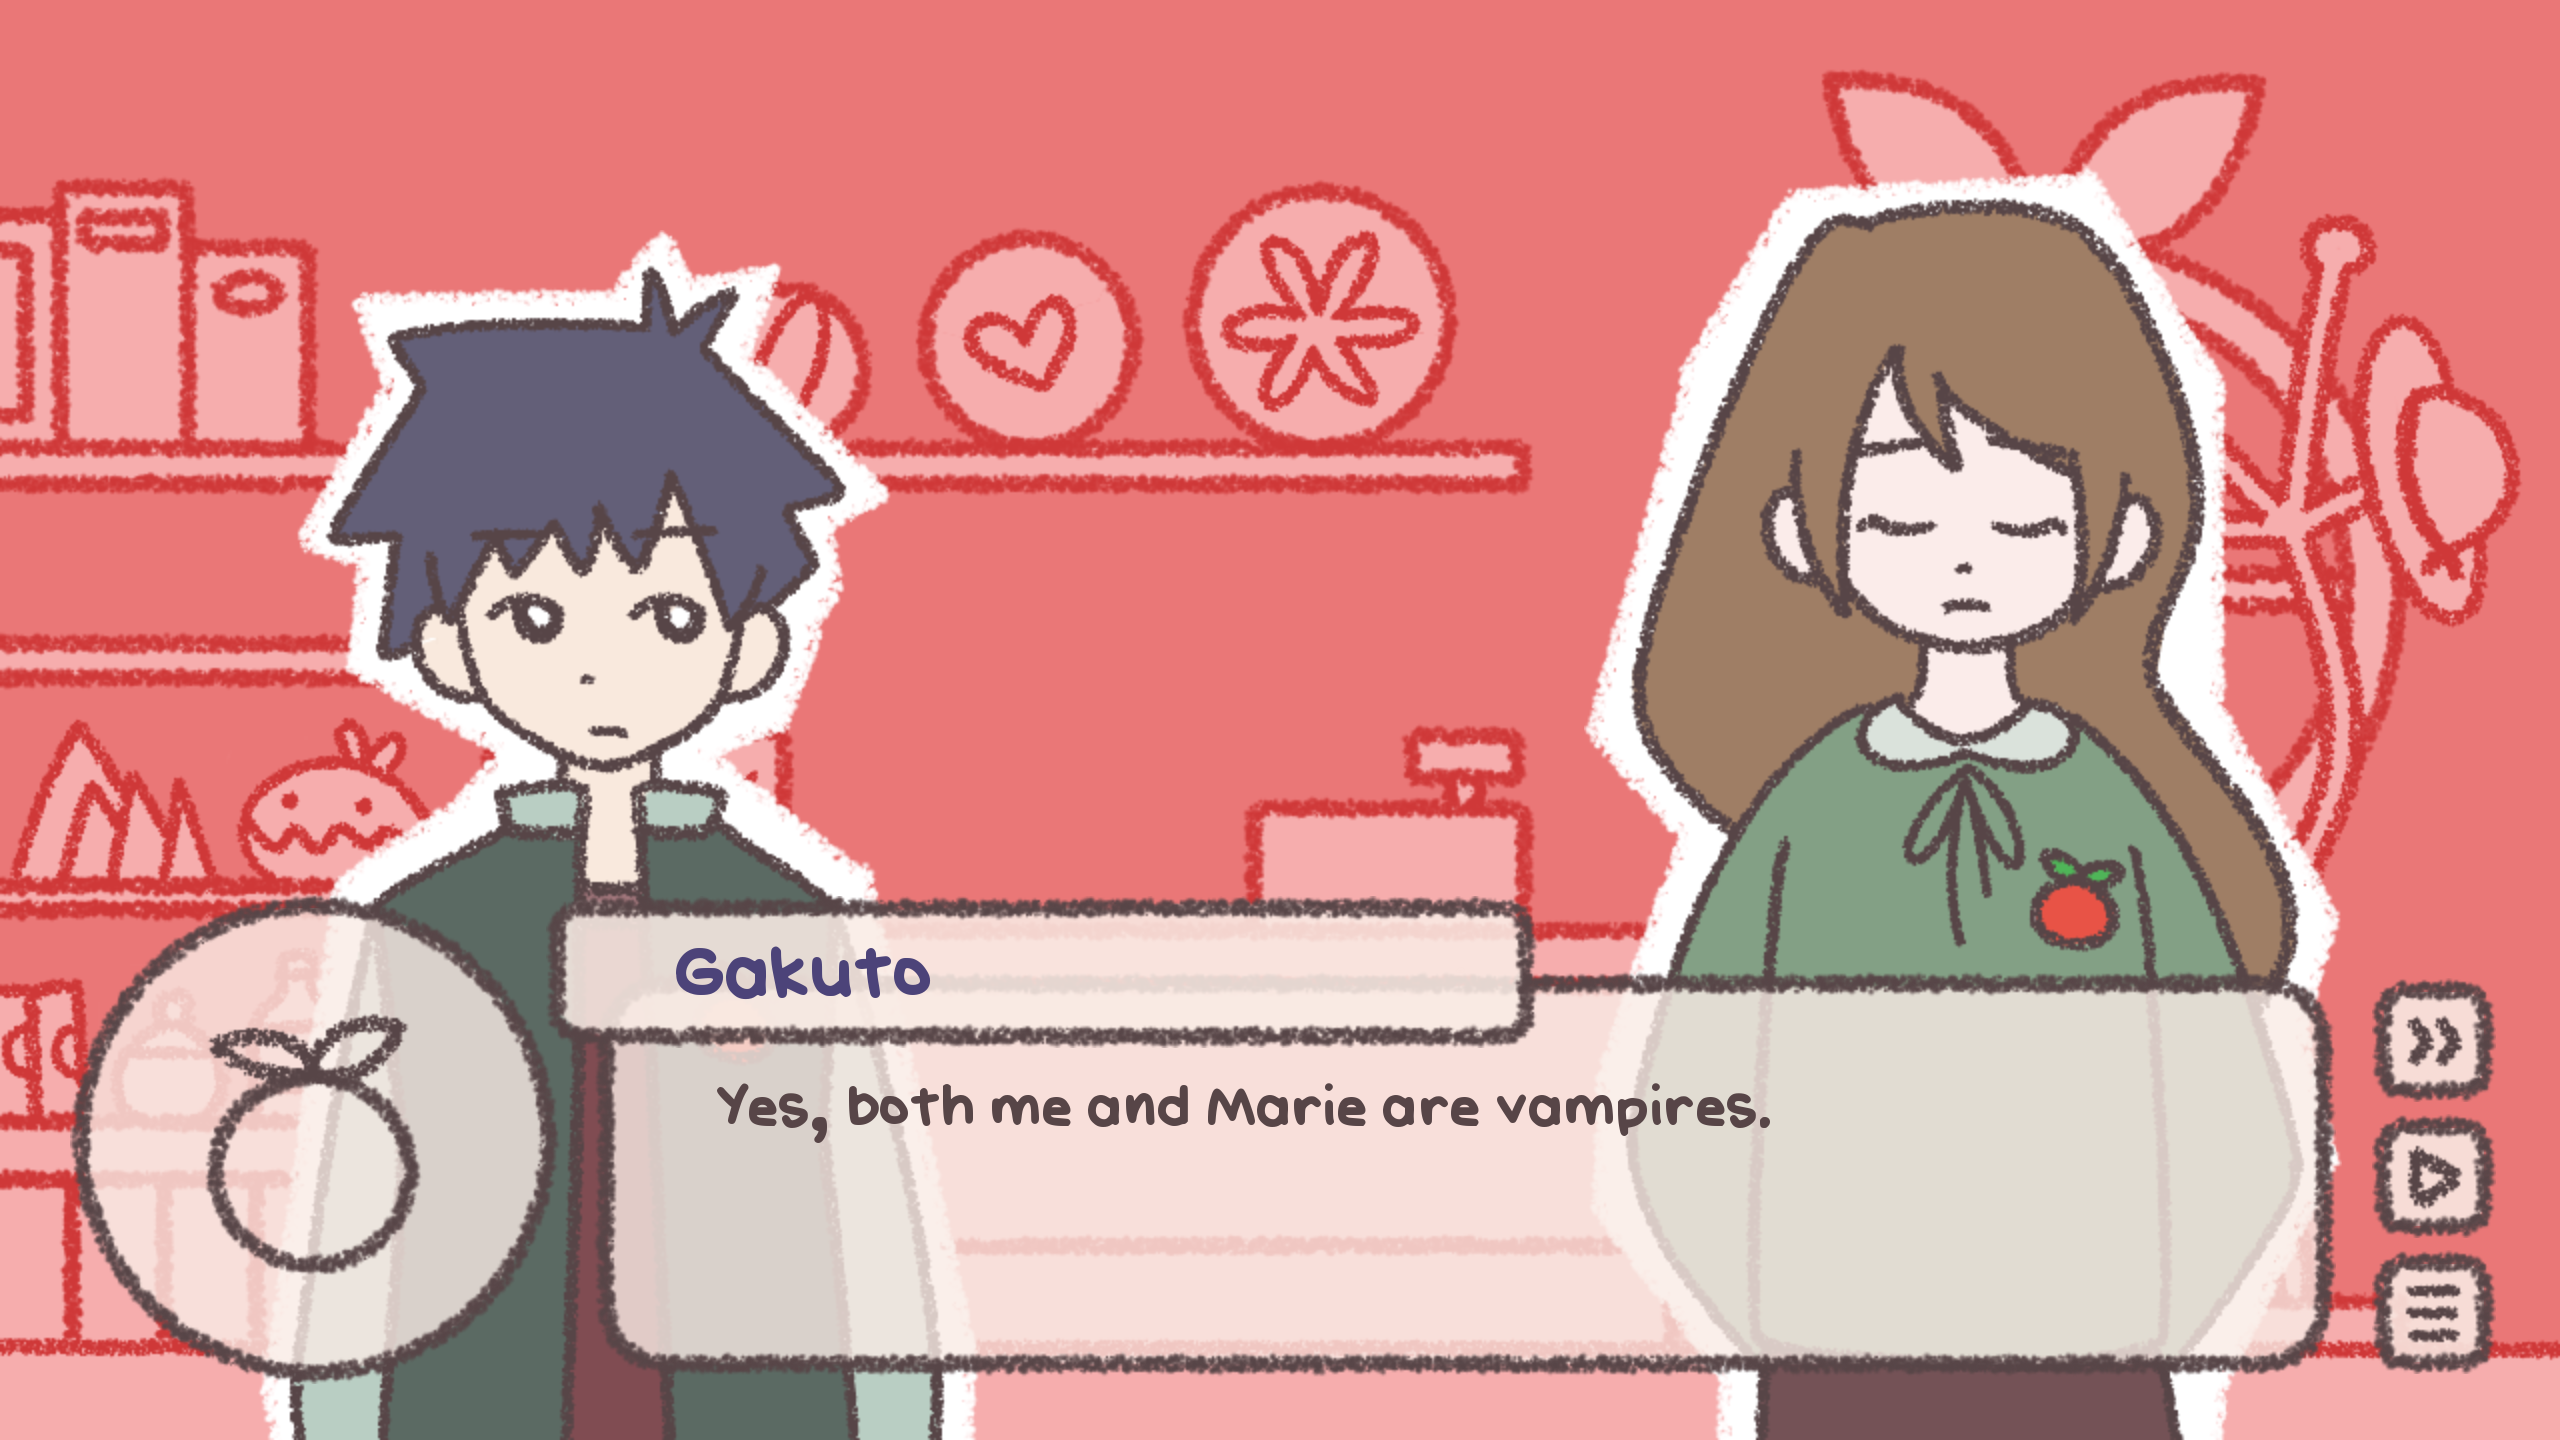 a screenshot of my vampire game showing two vampire characters